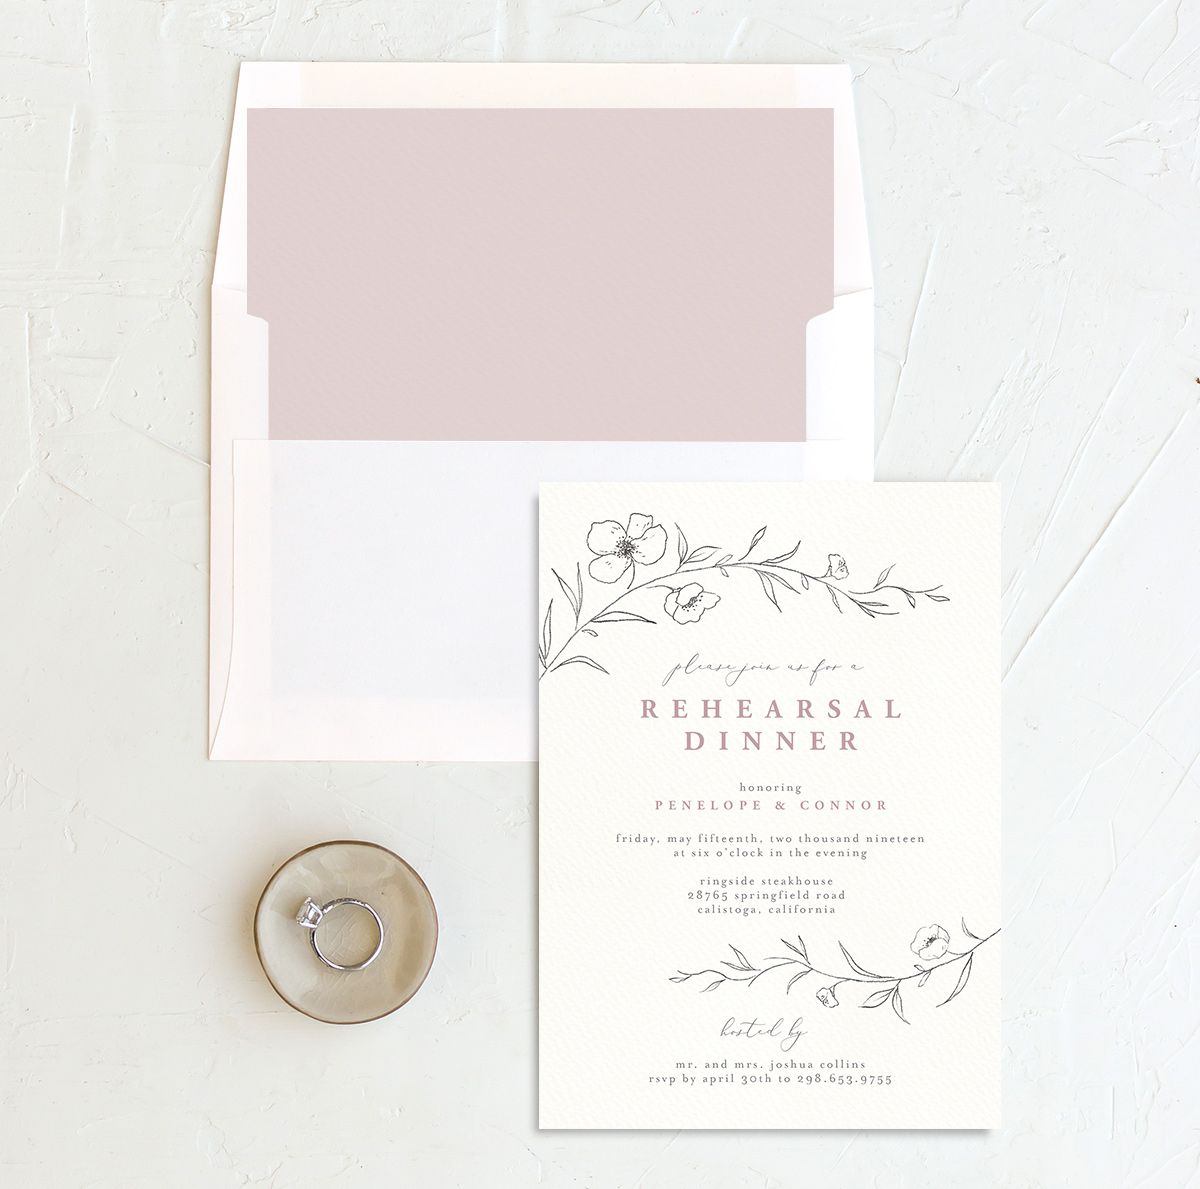 graceful botanical rehearsal dinner invitation in pink with envelope liner